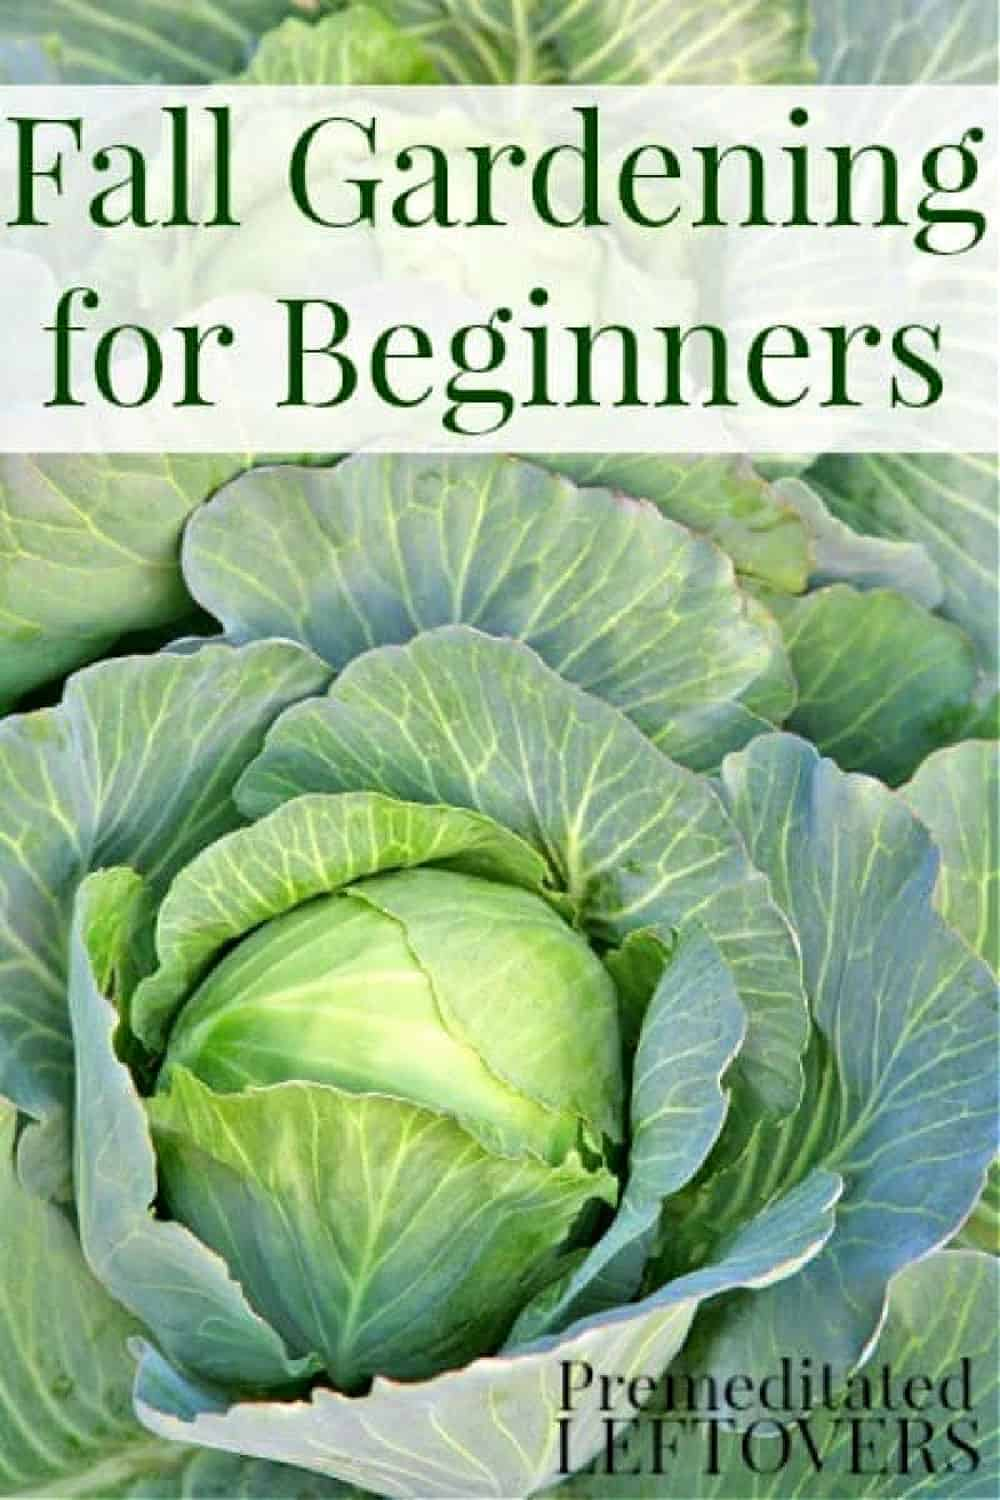 Fall gardening for beginners - tips to get started with cool weather gardening.